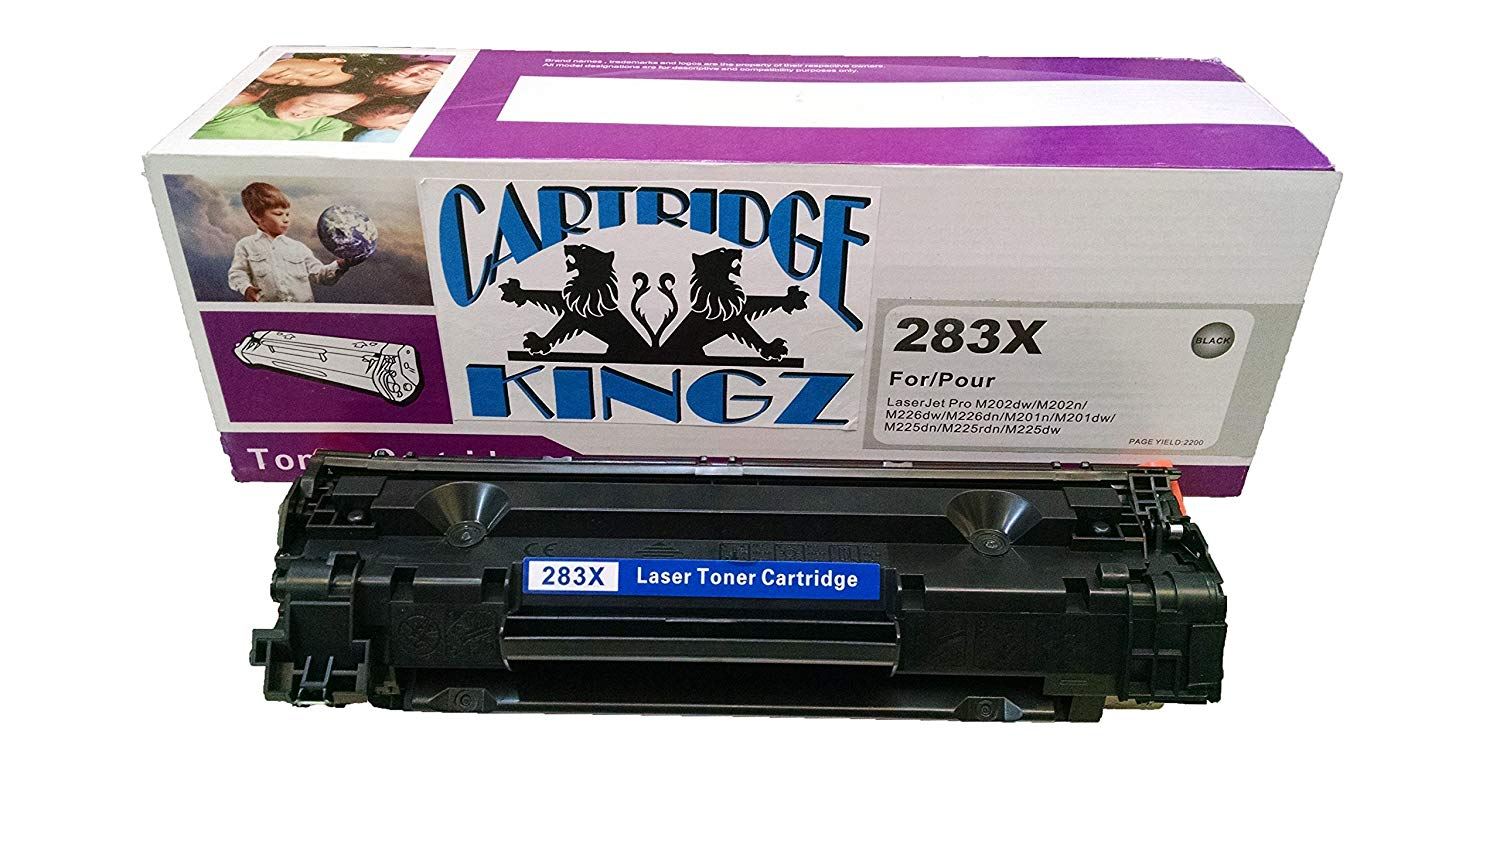 Cheap Cartridge For Hp Printers, find Cartridge For Hp